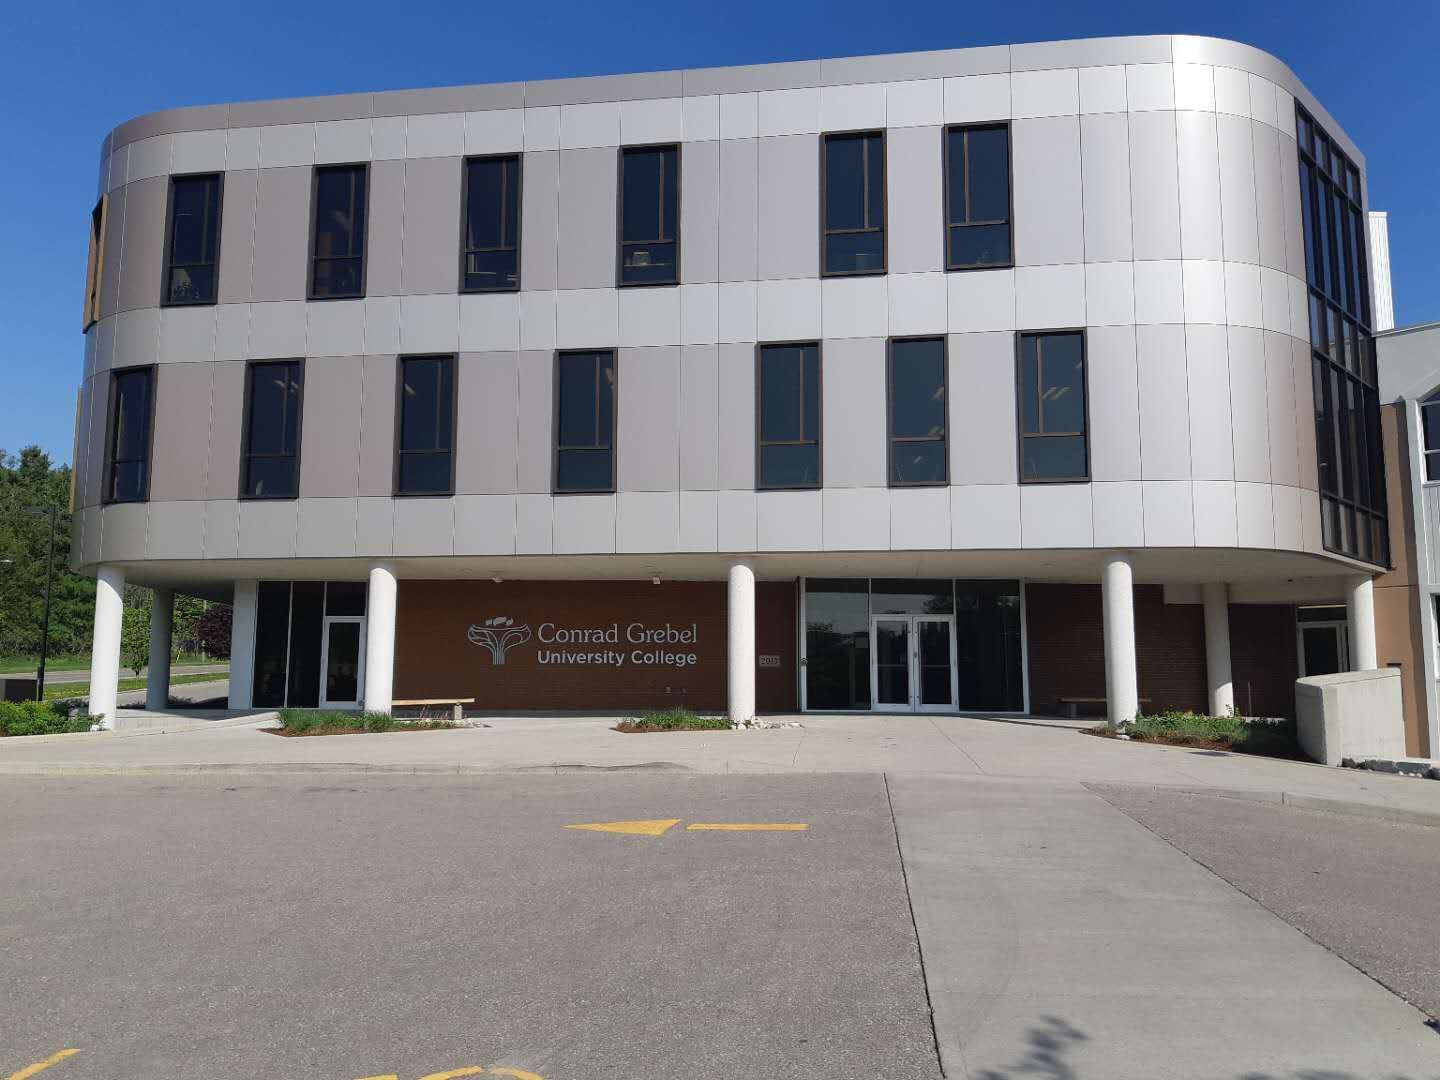 Waterloo New Life gathers at Conrad Grebel University College, where students can easily find them.